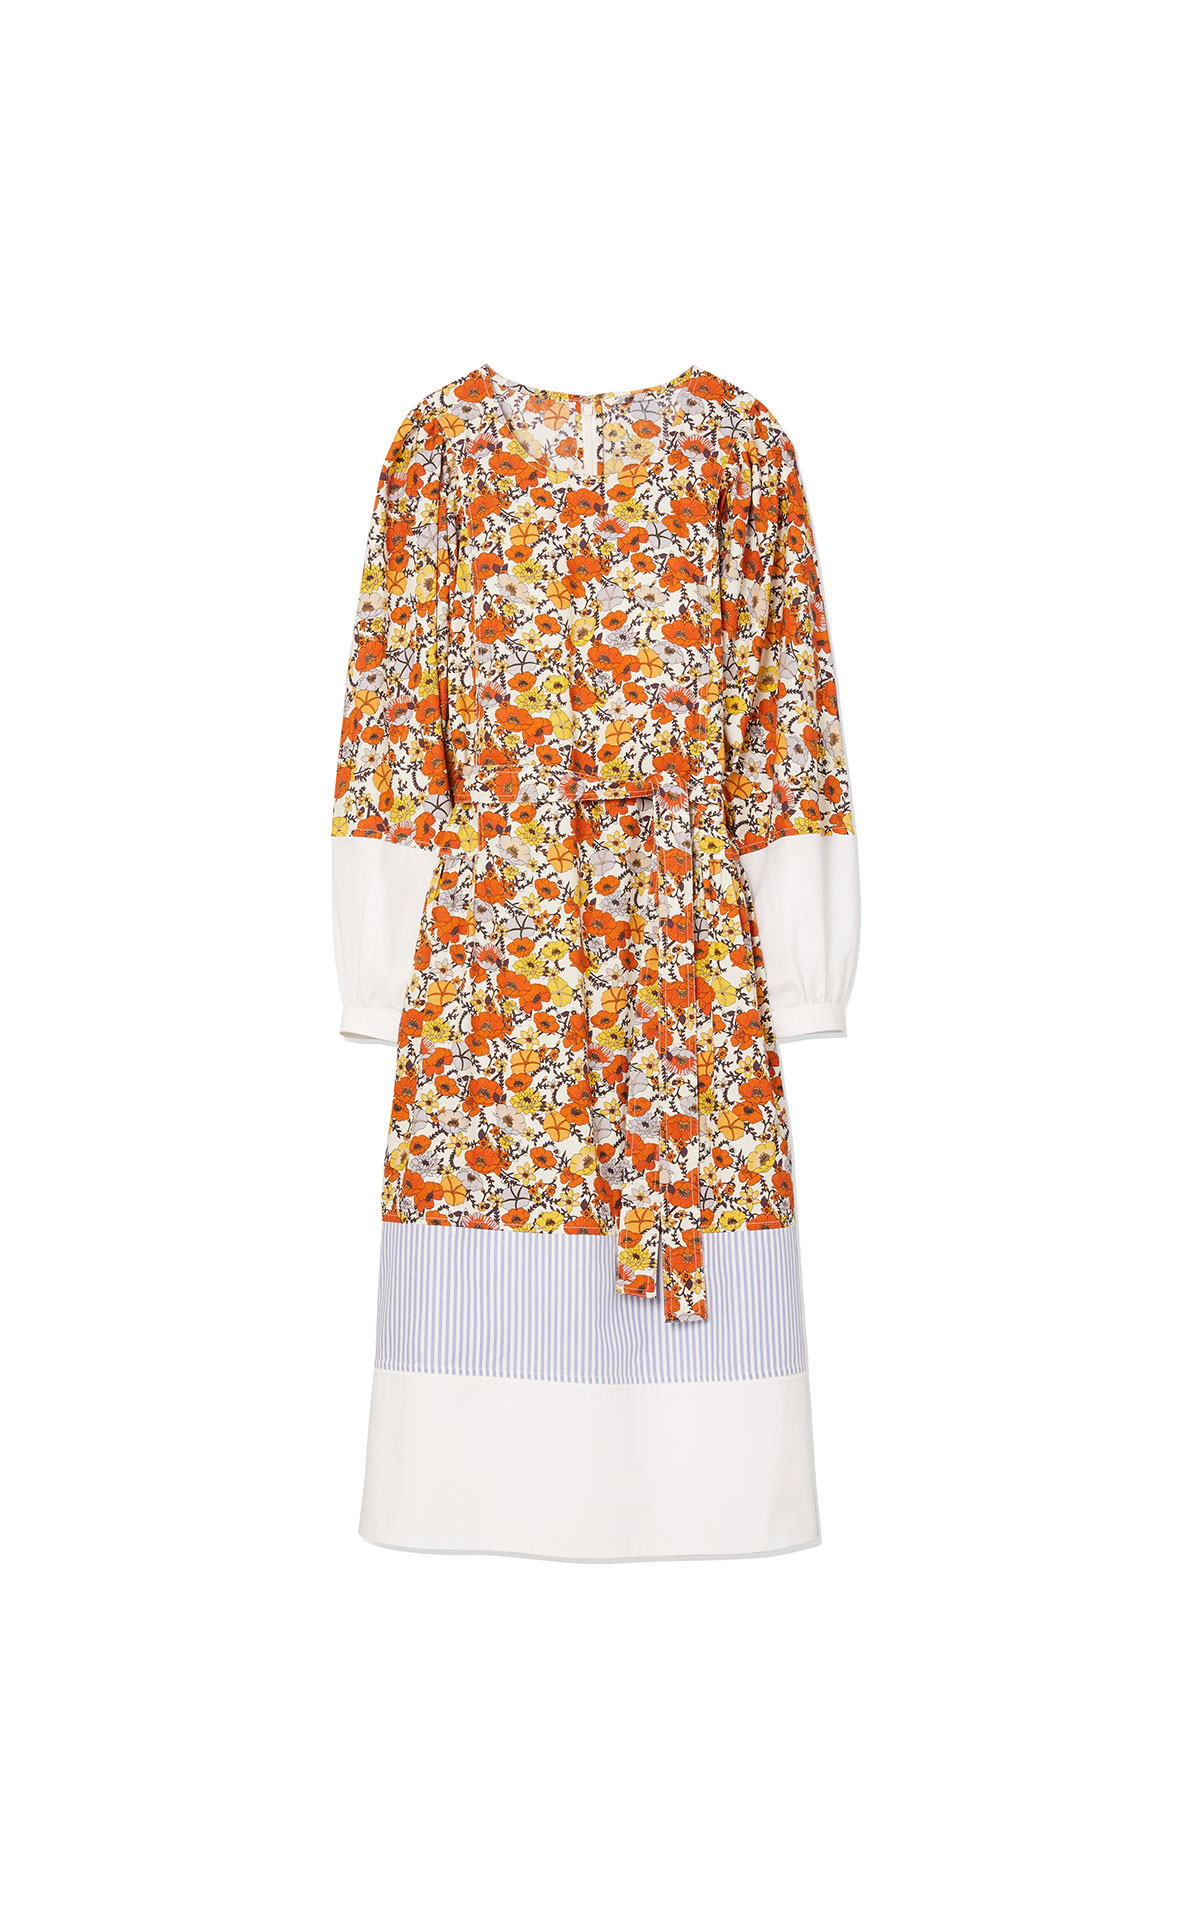 Tory Burch Printed cotton dress from Bicester Village